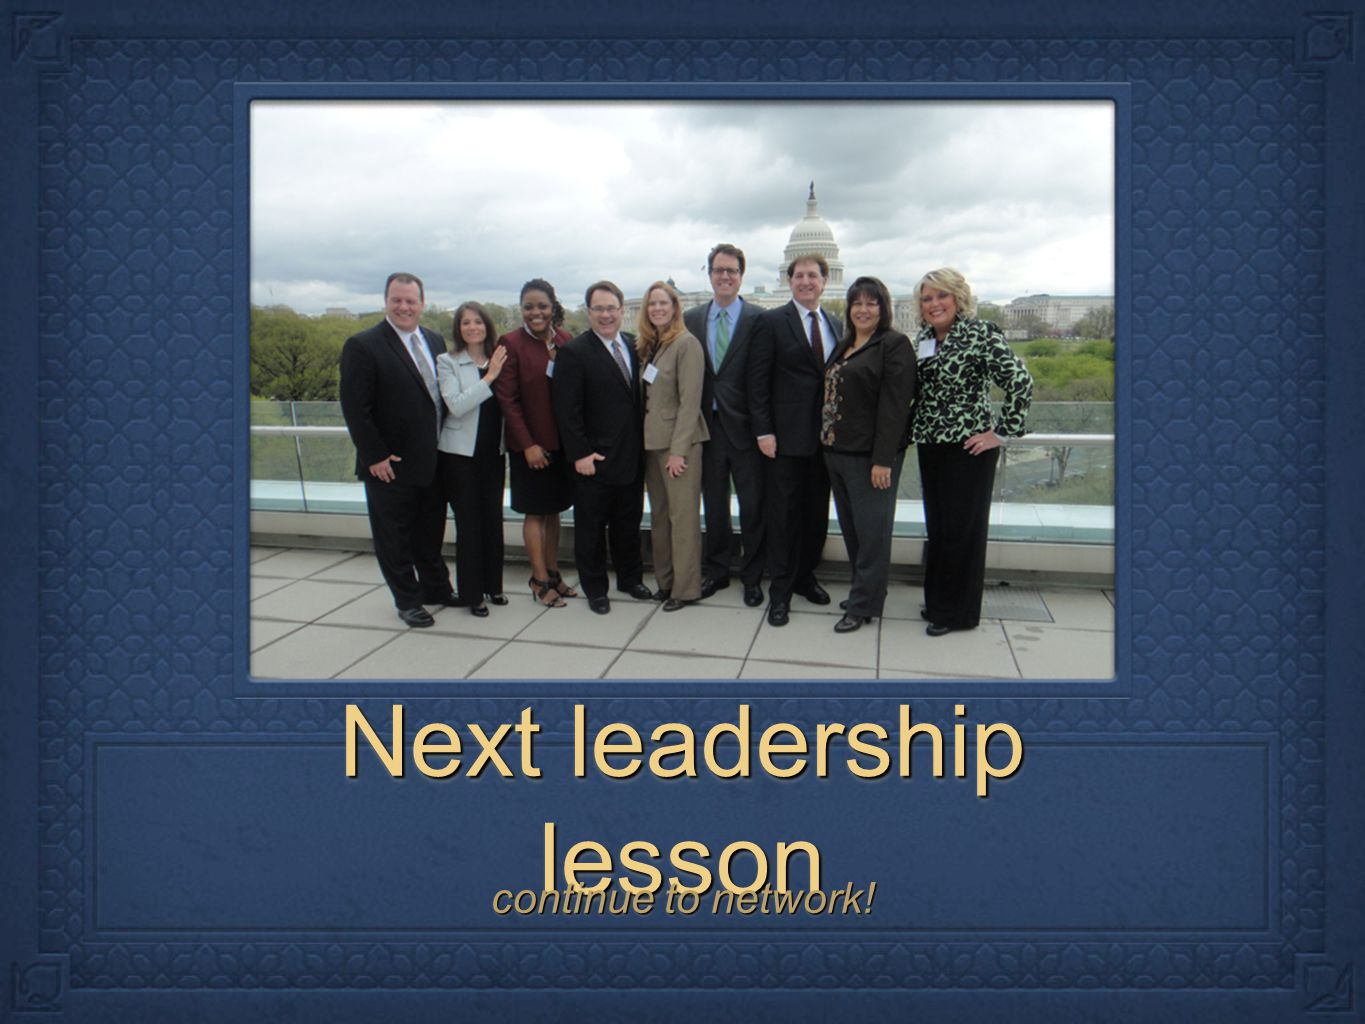 Next leadership lesson continue to network!